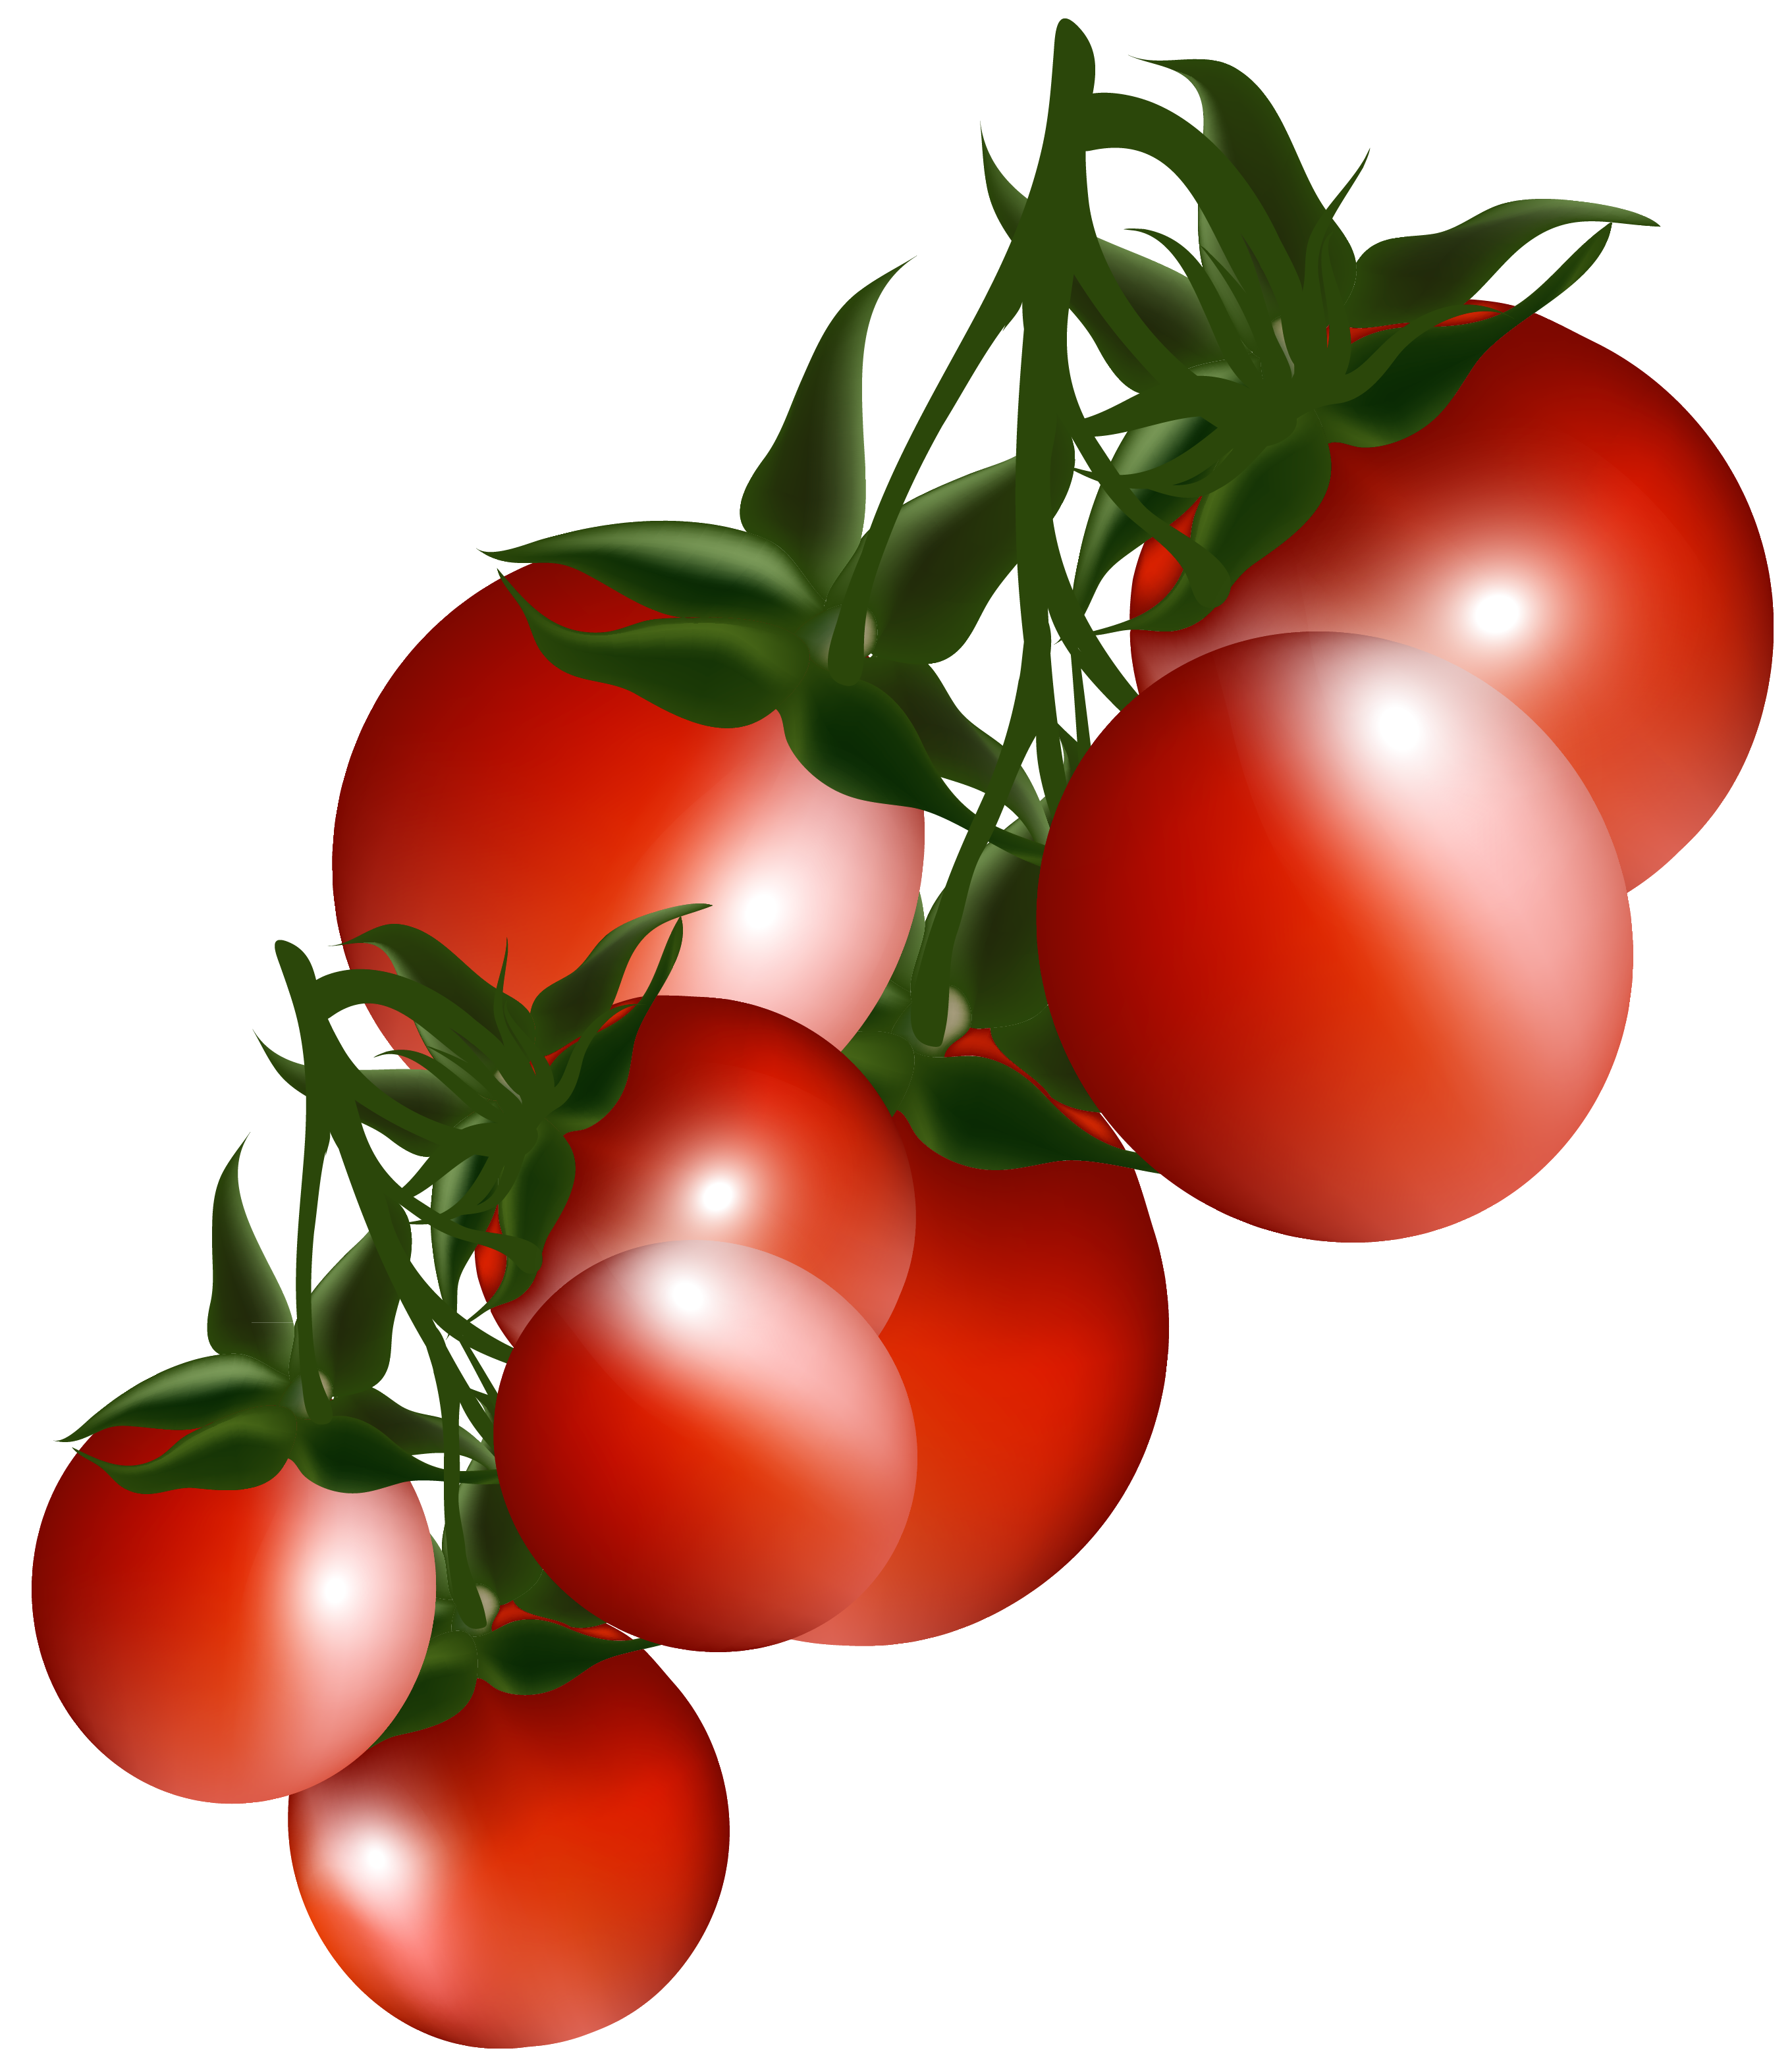 Free clipart tomatoes.